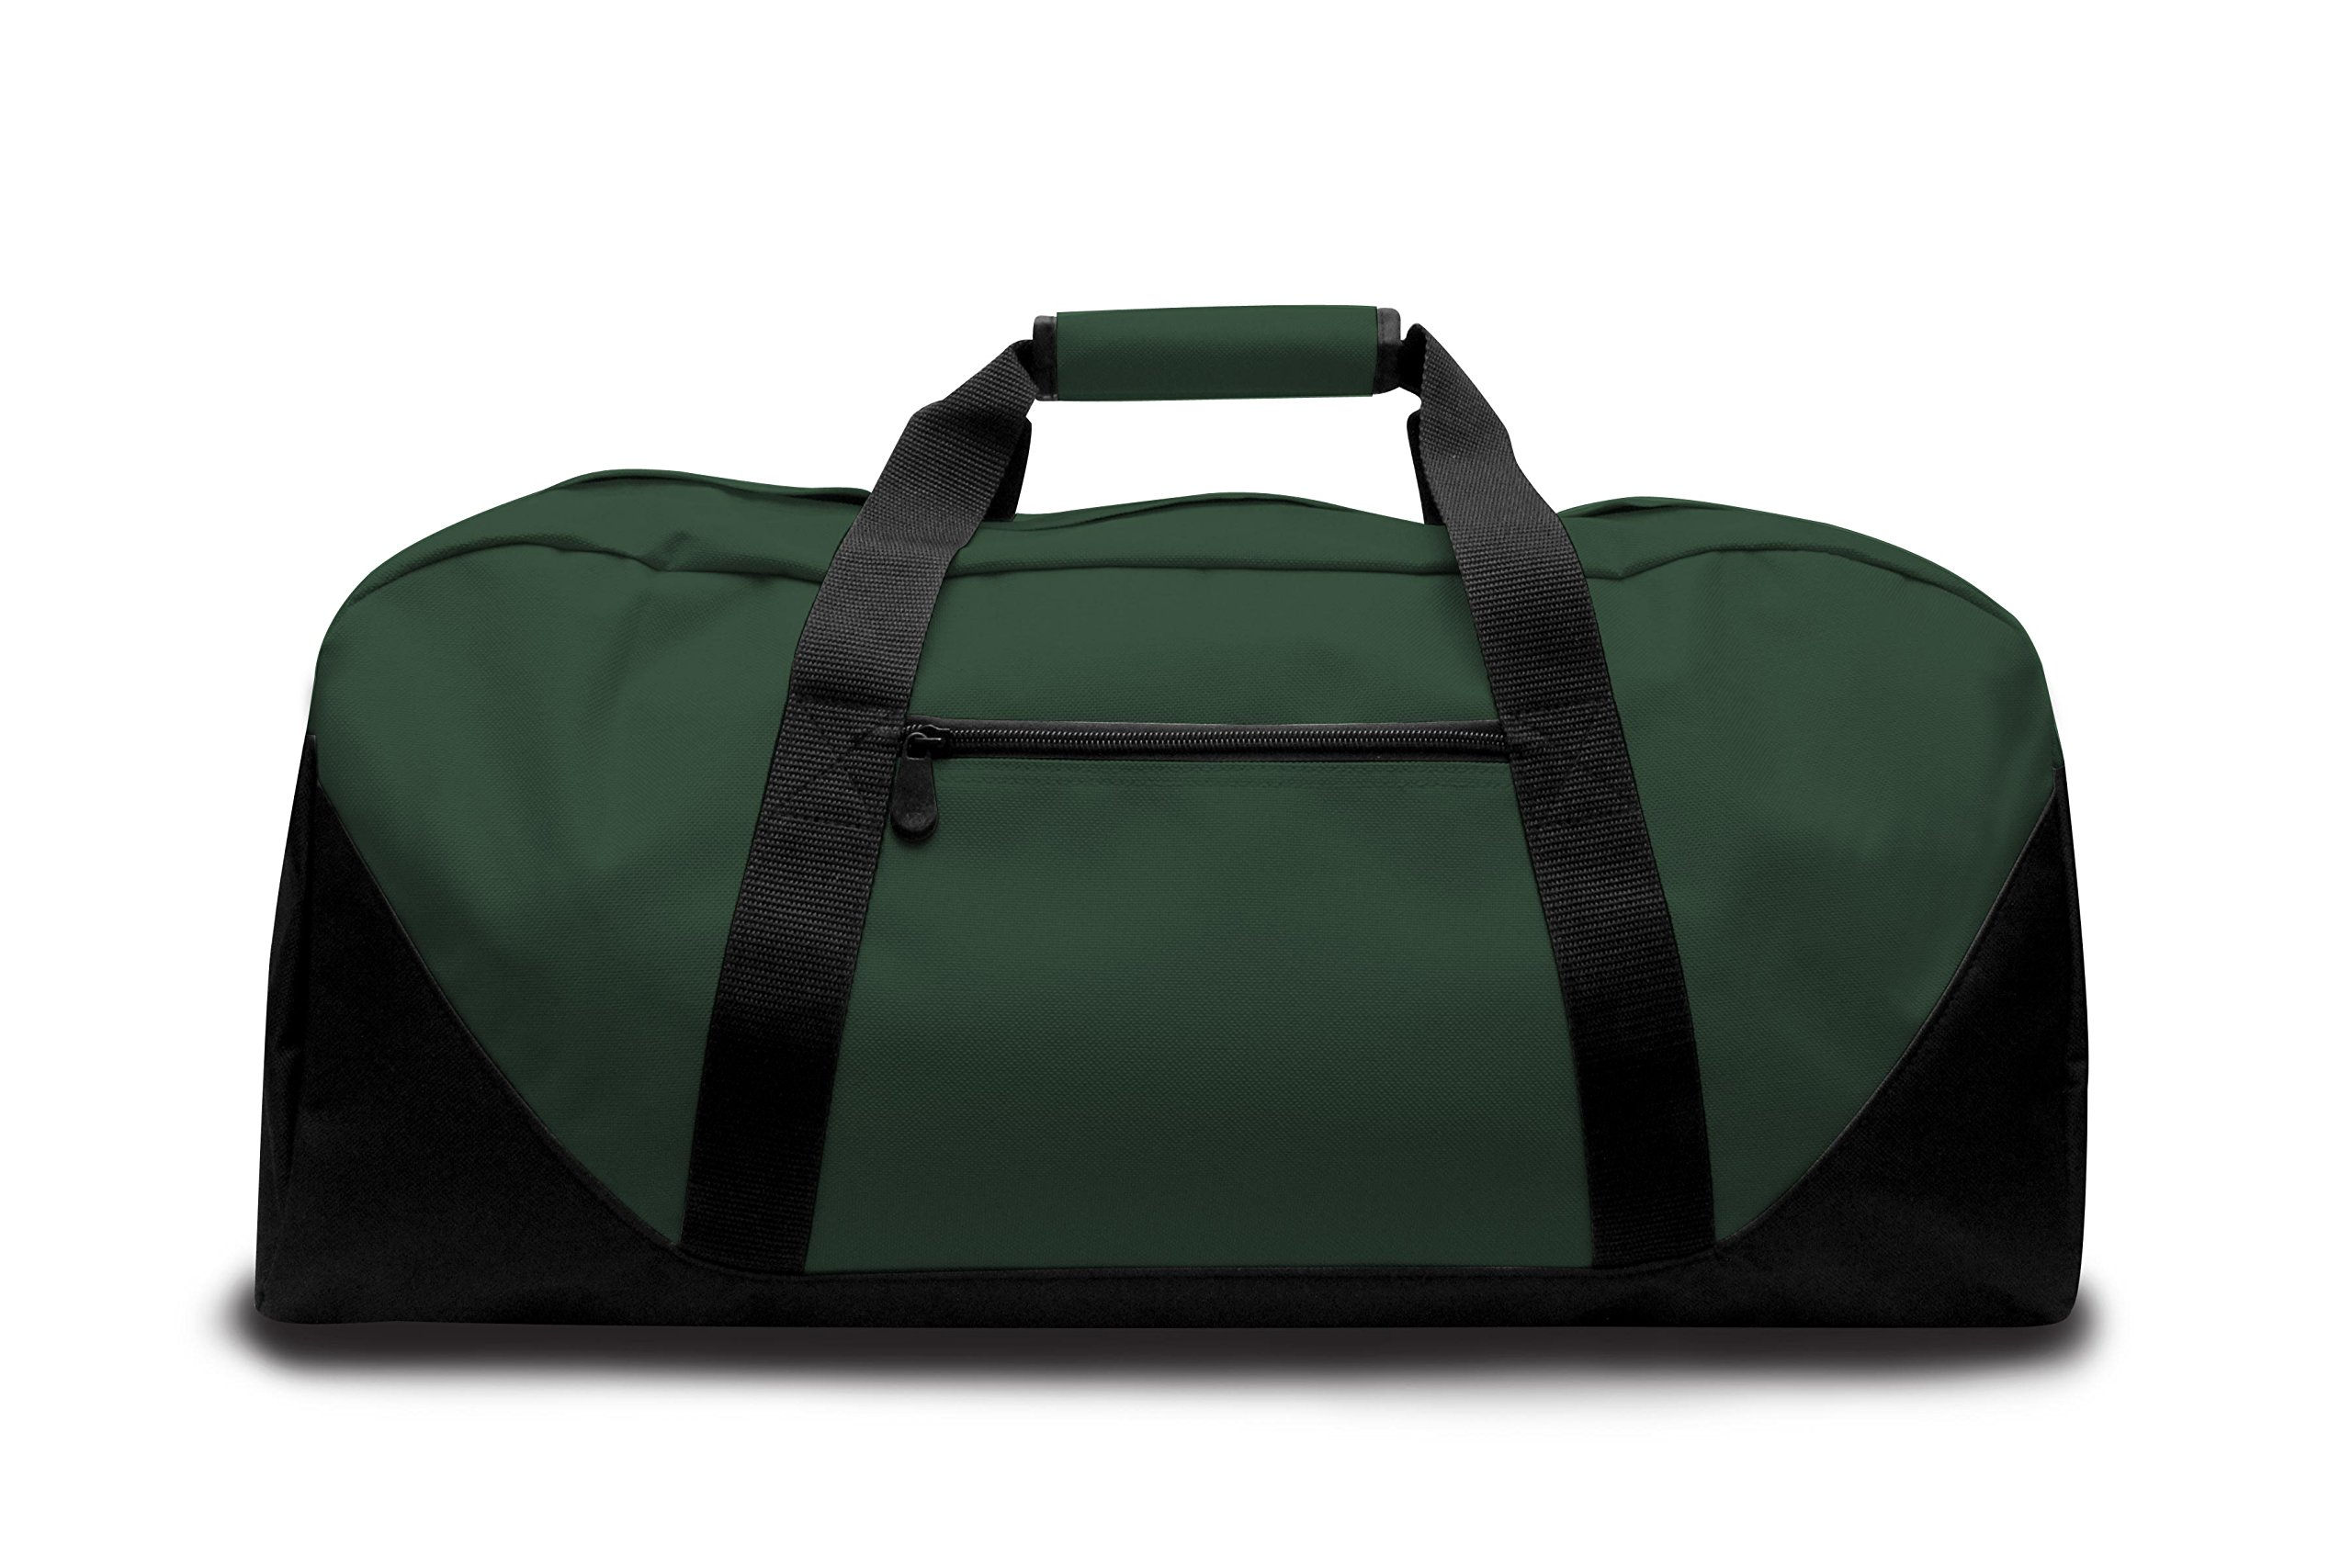 LIBERTY SERIES MEDIUM DUFFLE, College Forest, Case of 24 by DollarItemDirect